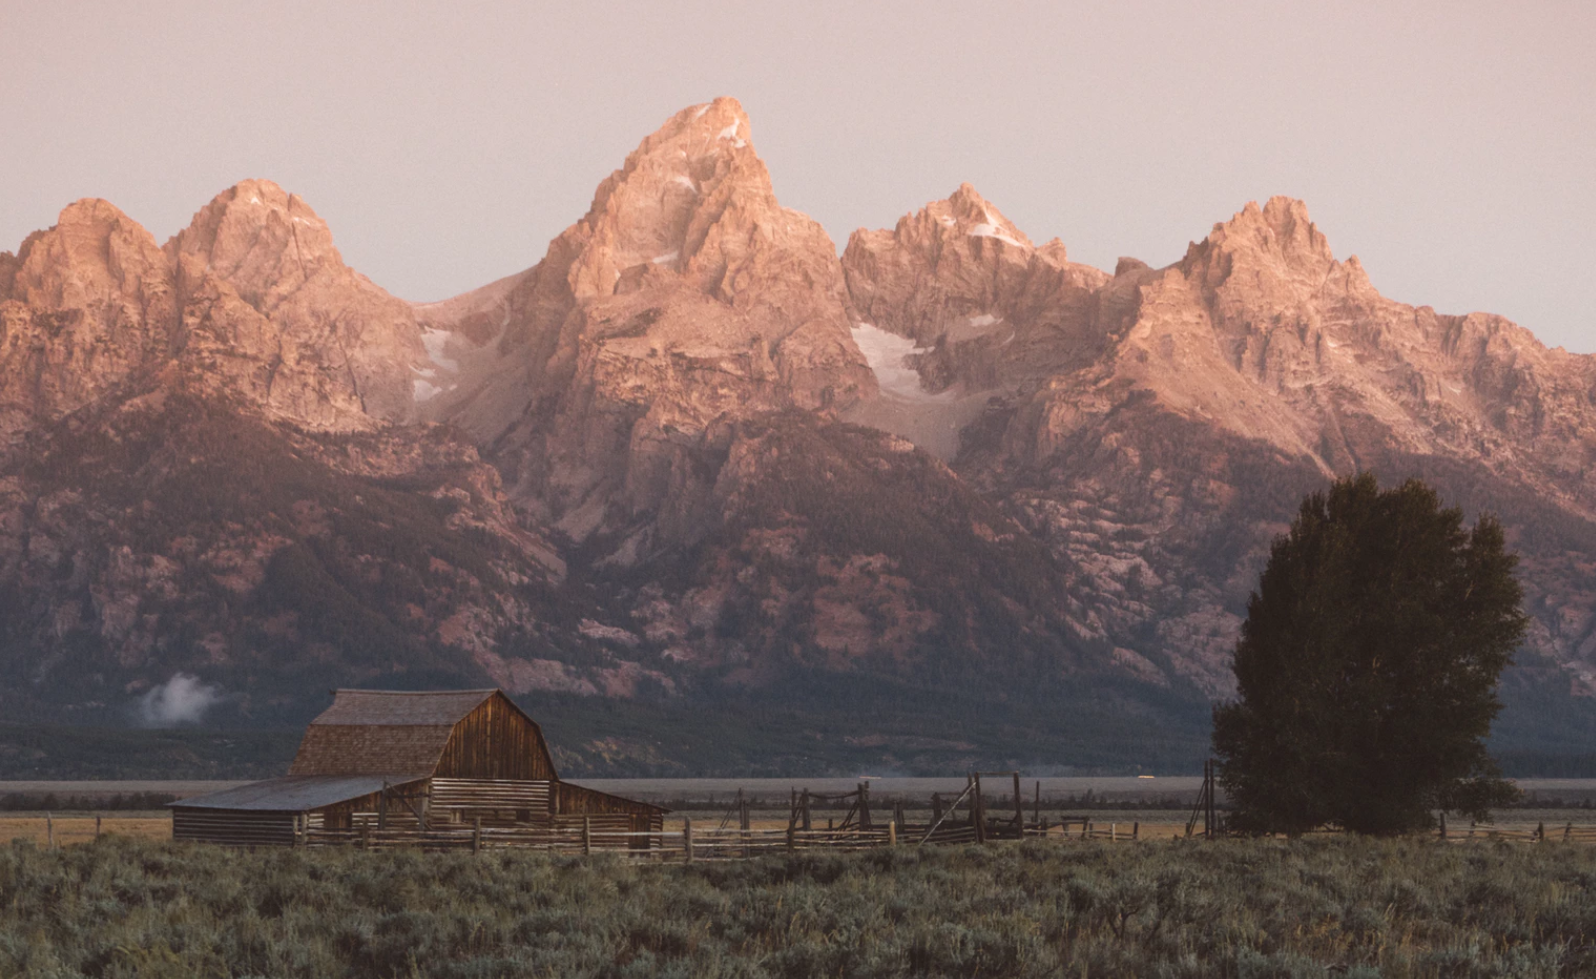 Grand Tetons. Photo by Adrian at Unsplash.com